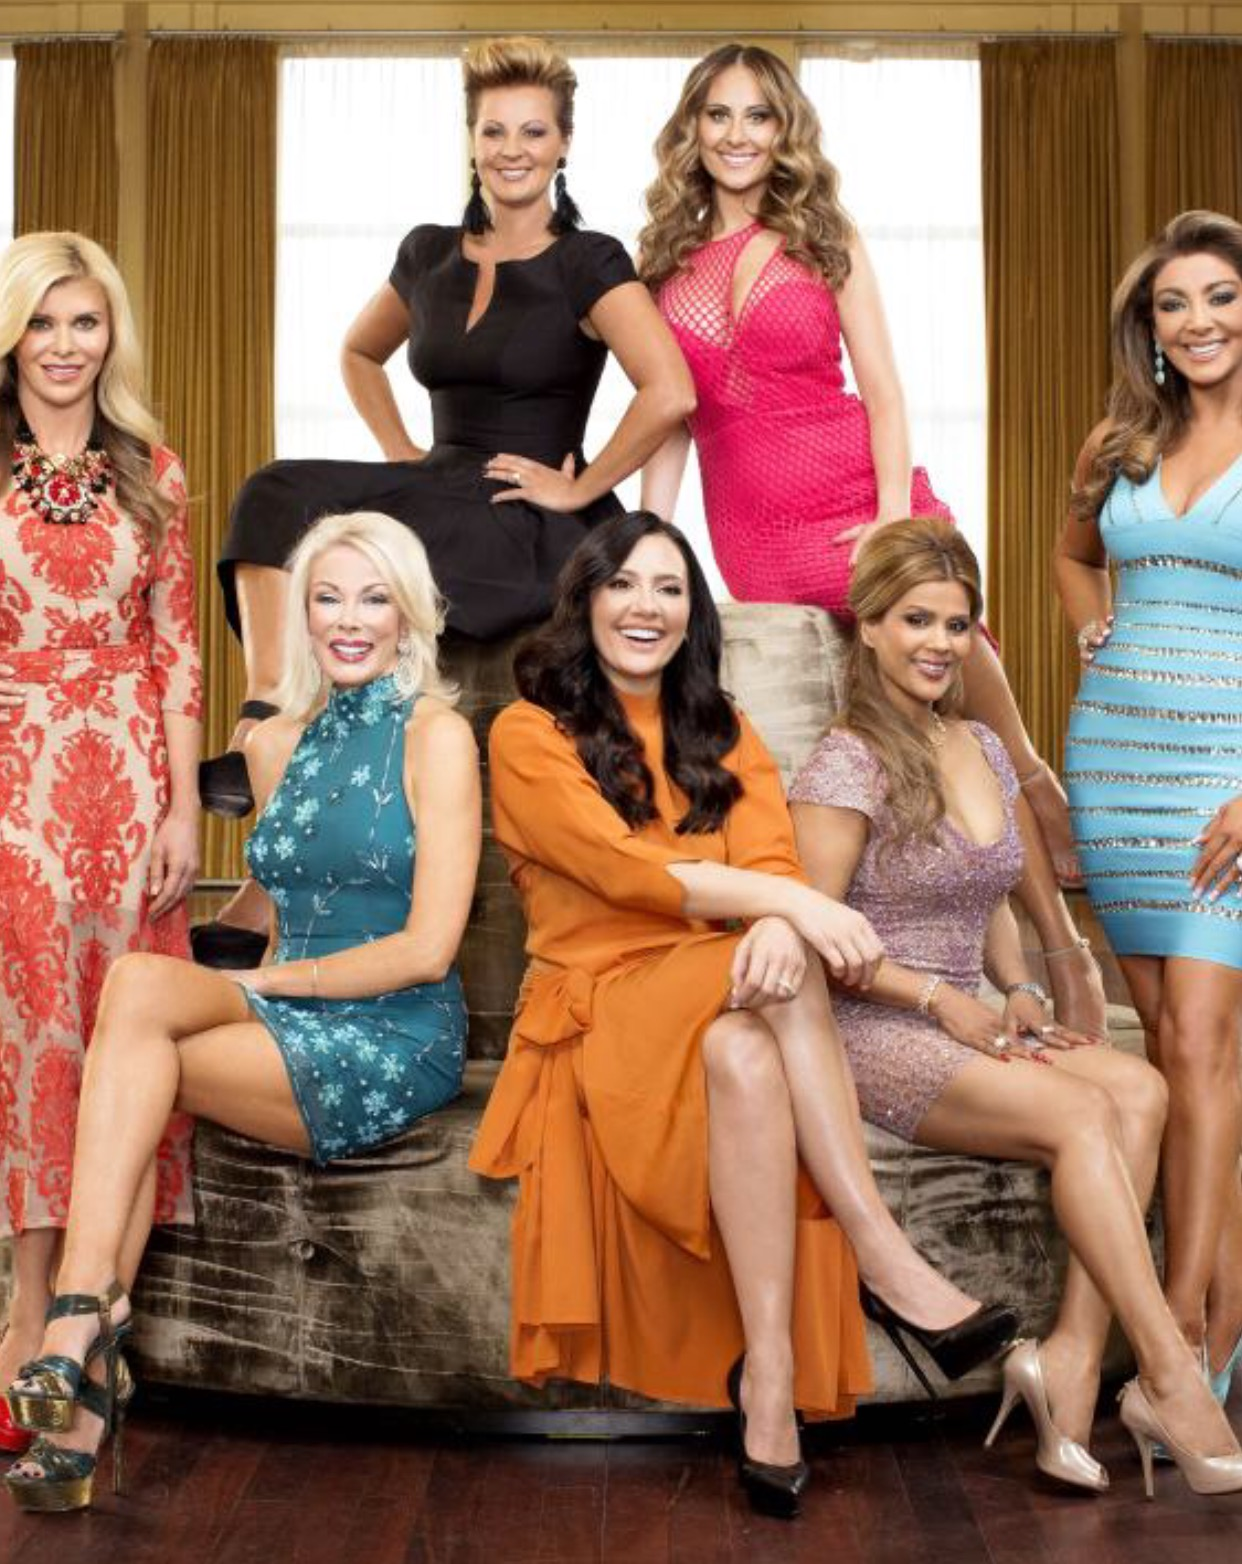 2014 season 2 The Real Housewives of Melbourne    Gamble, Janet, Chyka, Jackie, Pettifluer, Gina and I.